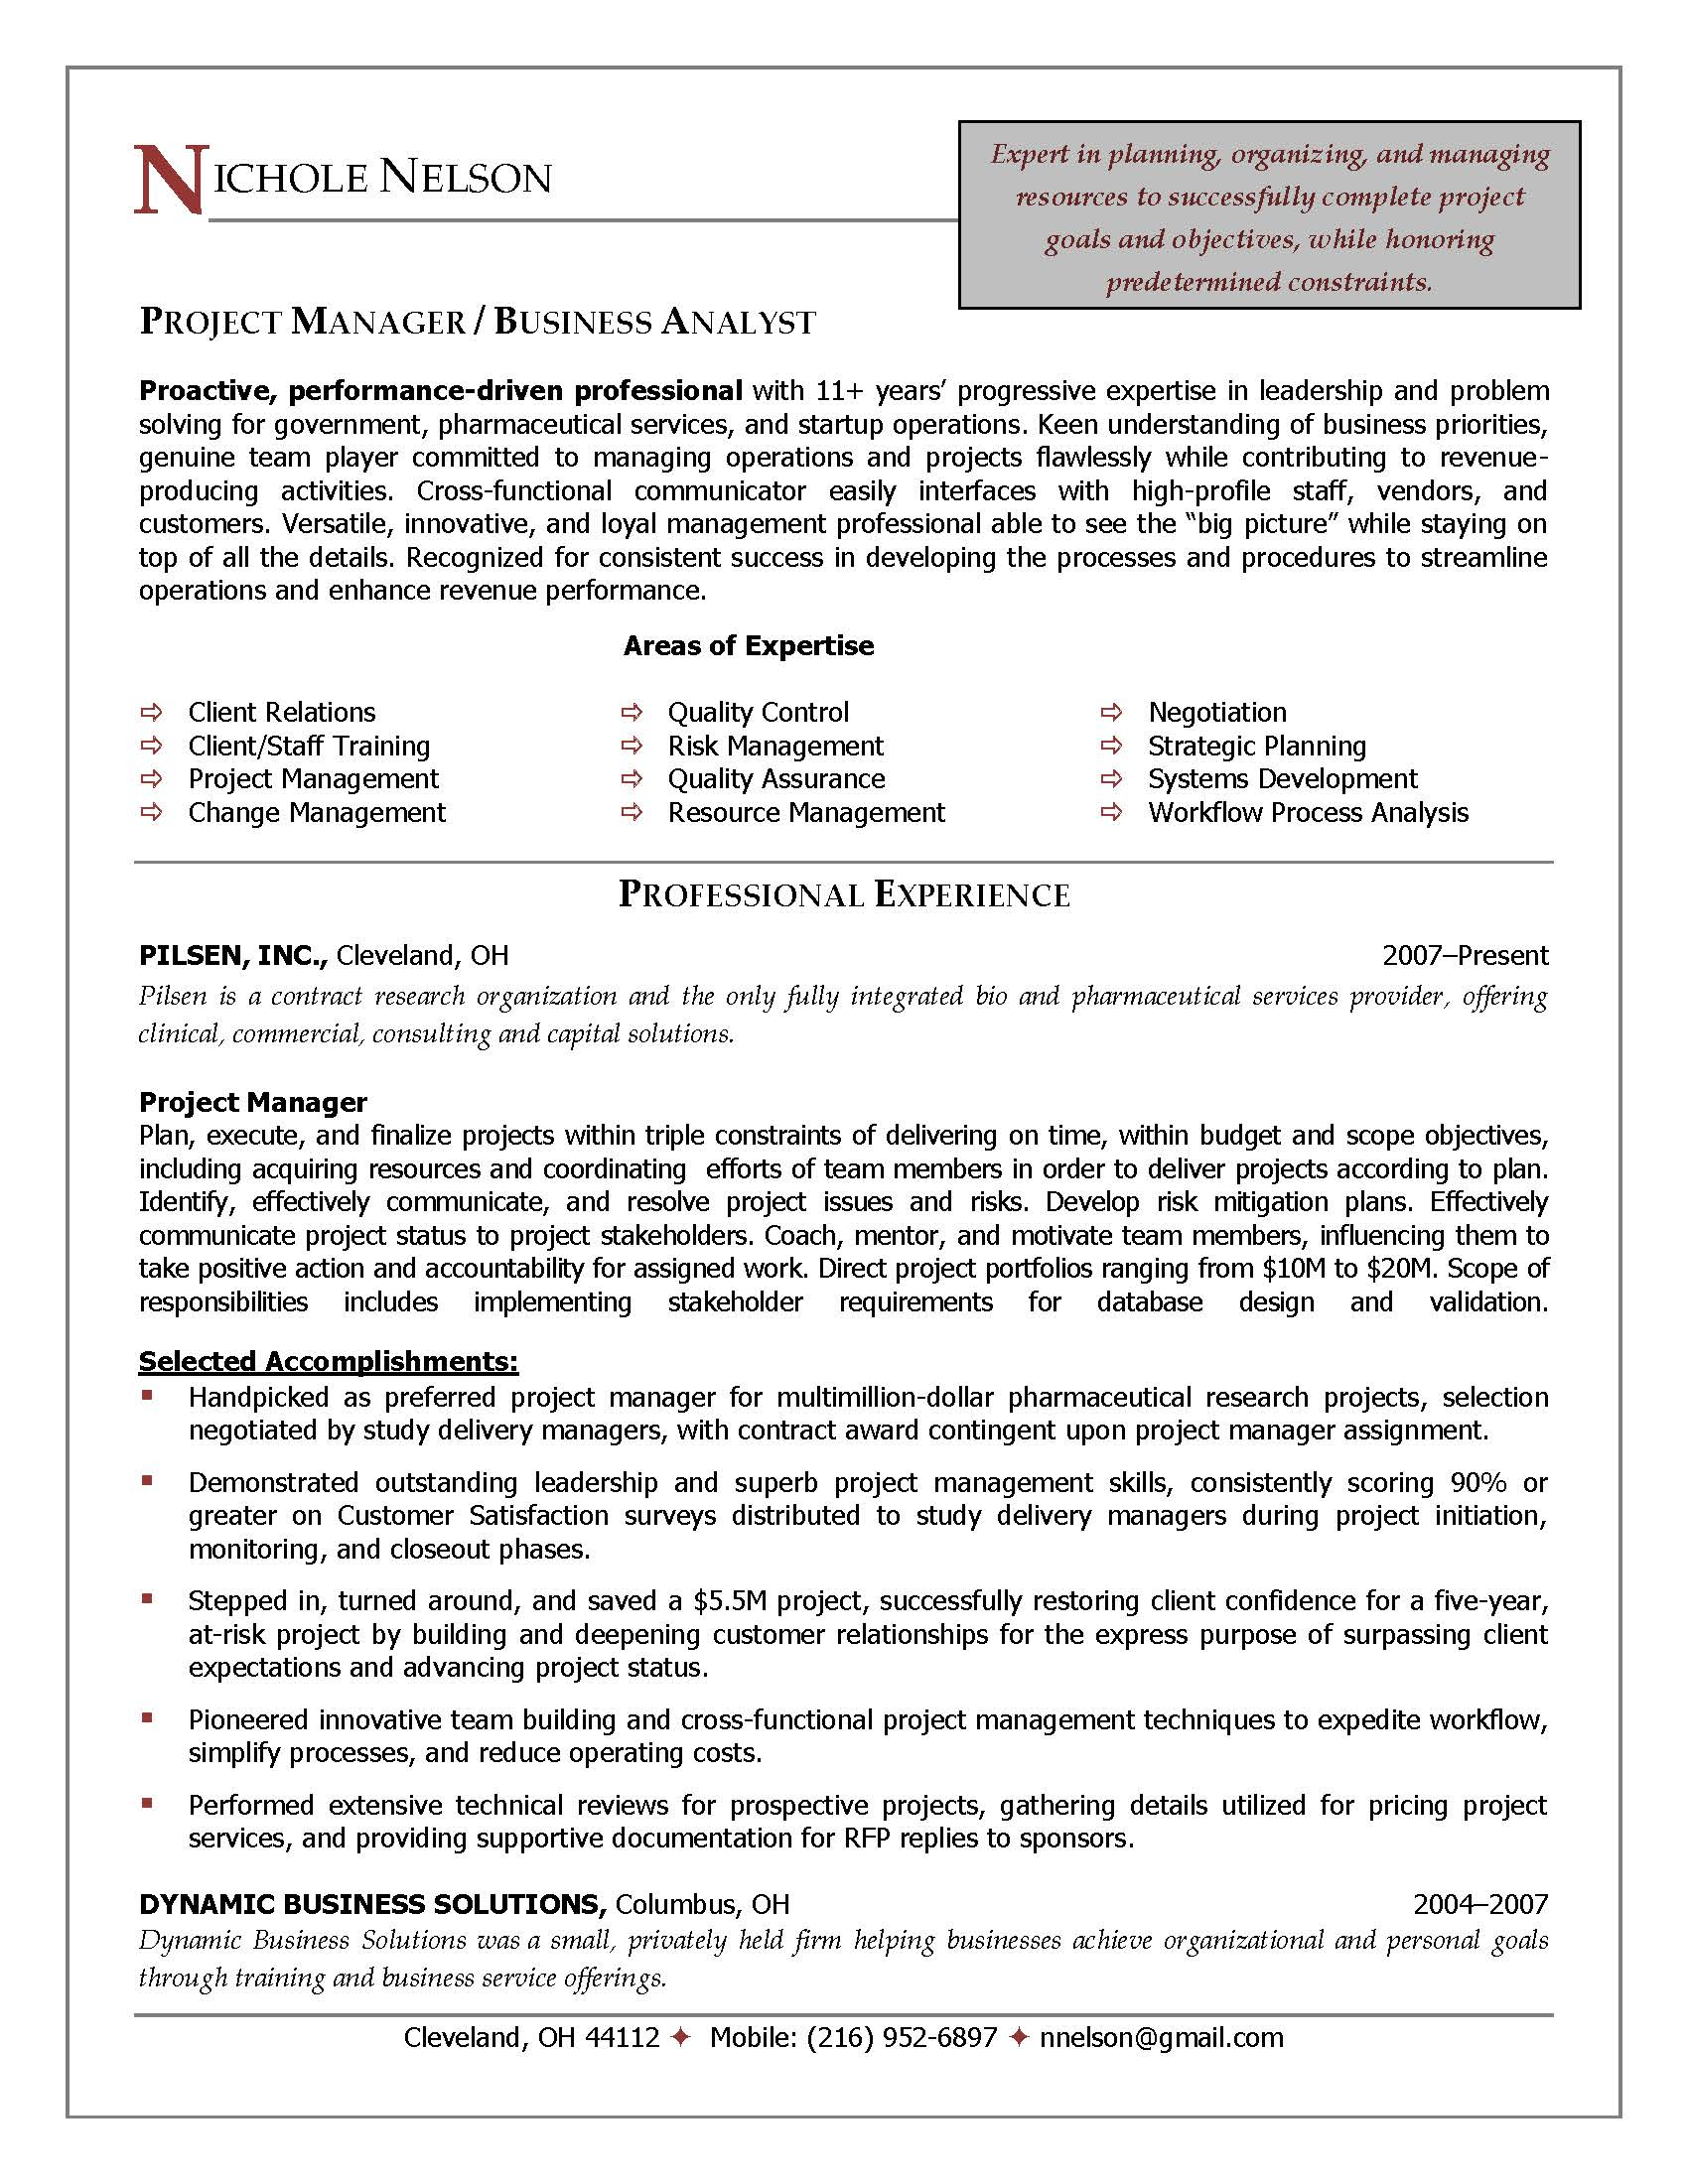 Program Manager Resume Example bakery supervisor sample resume – Technical Project Manager Resume Sample